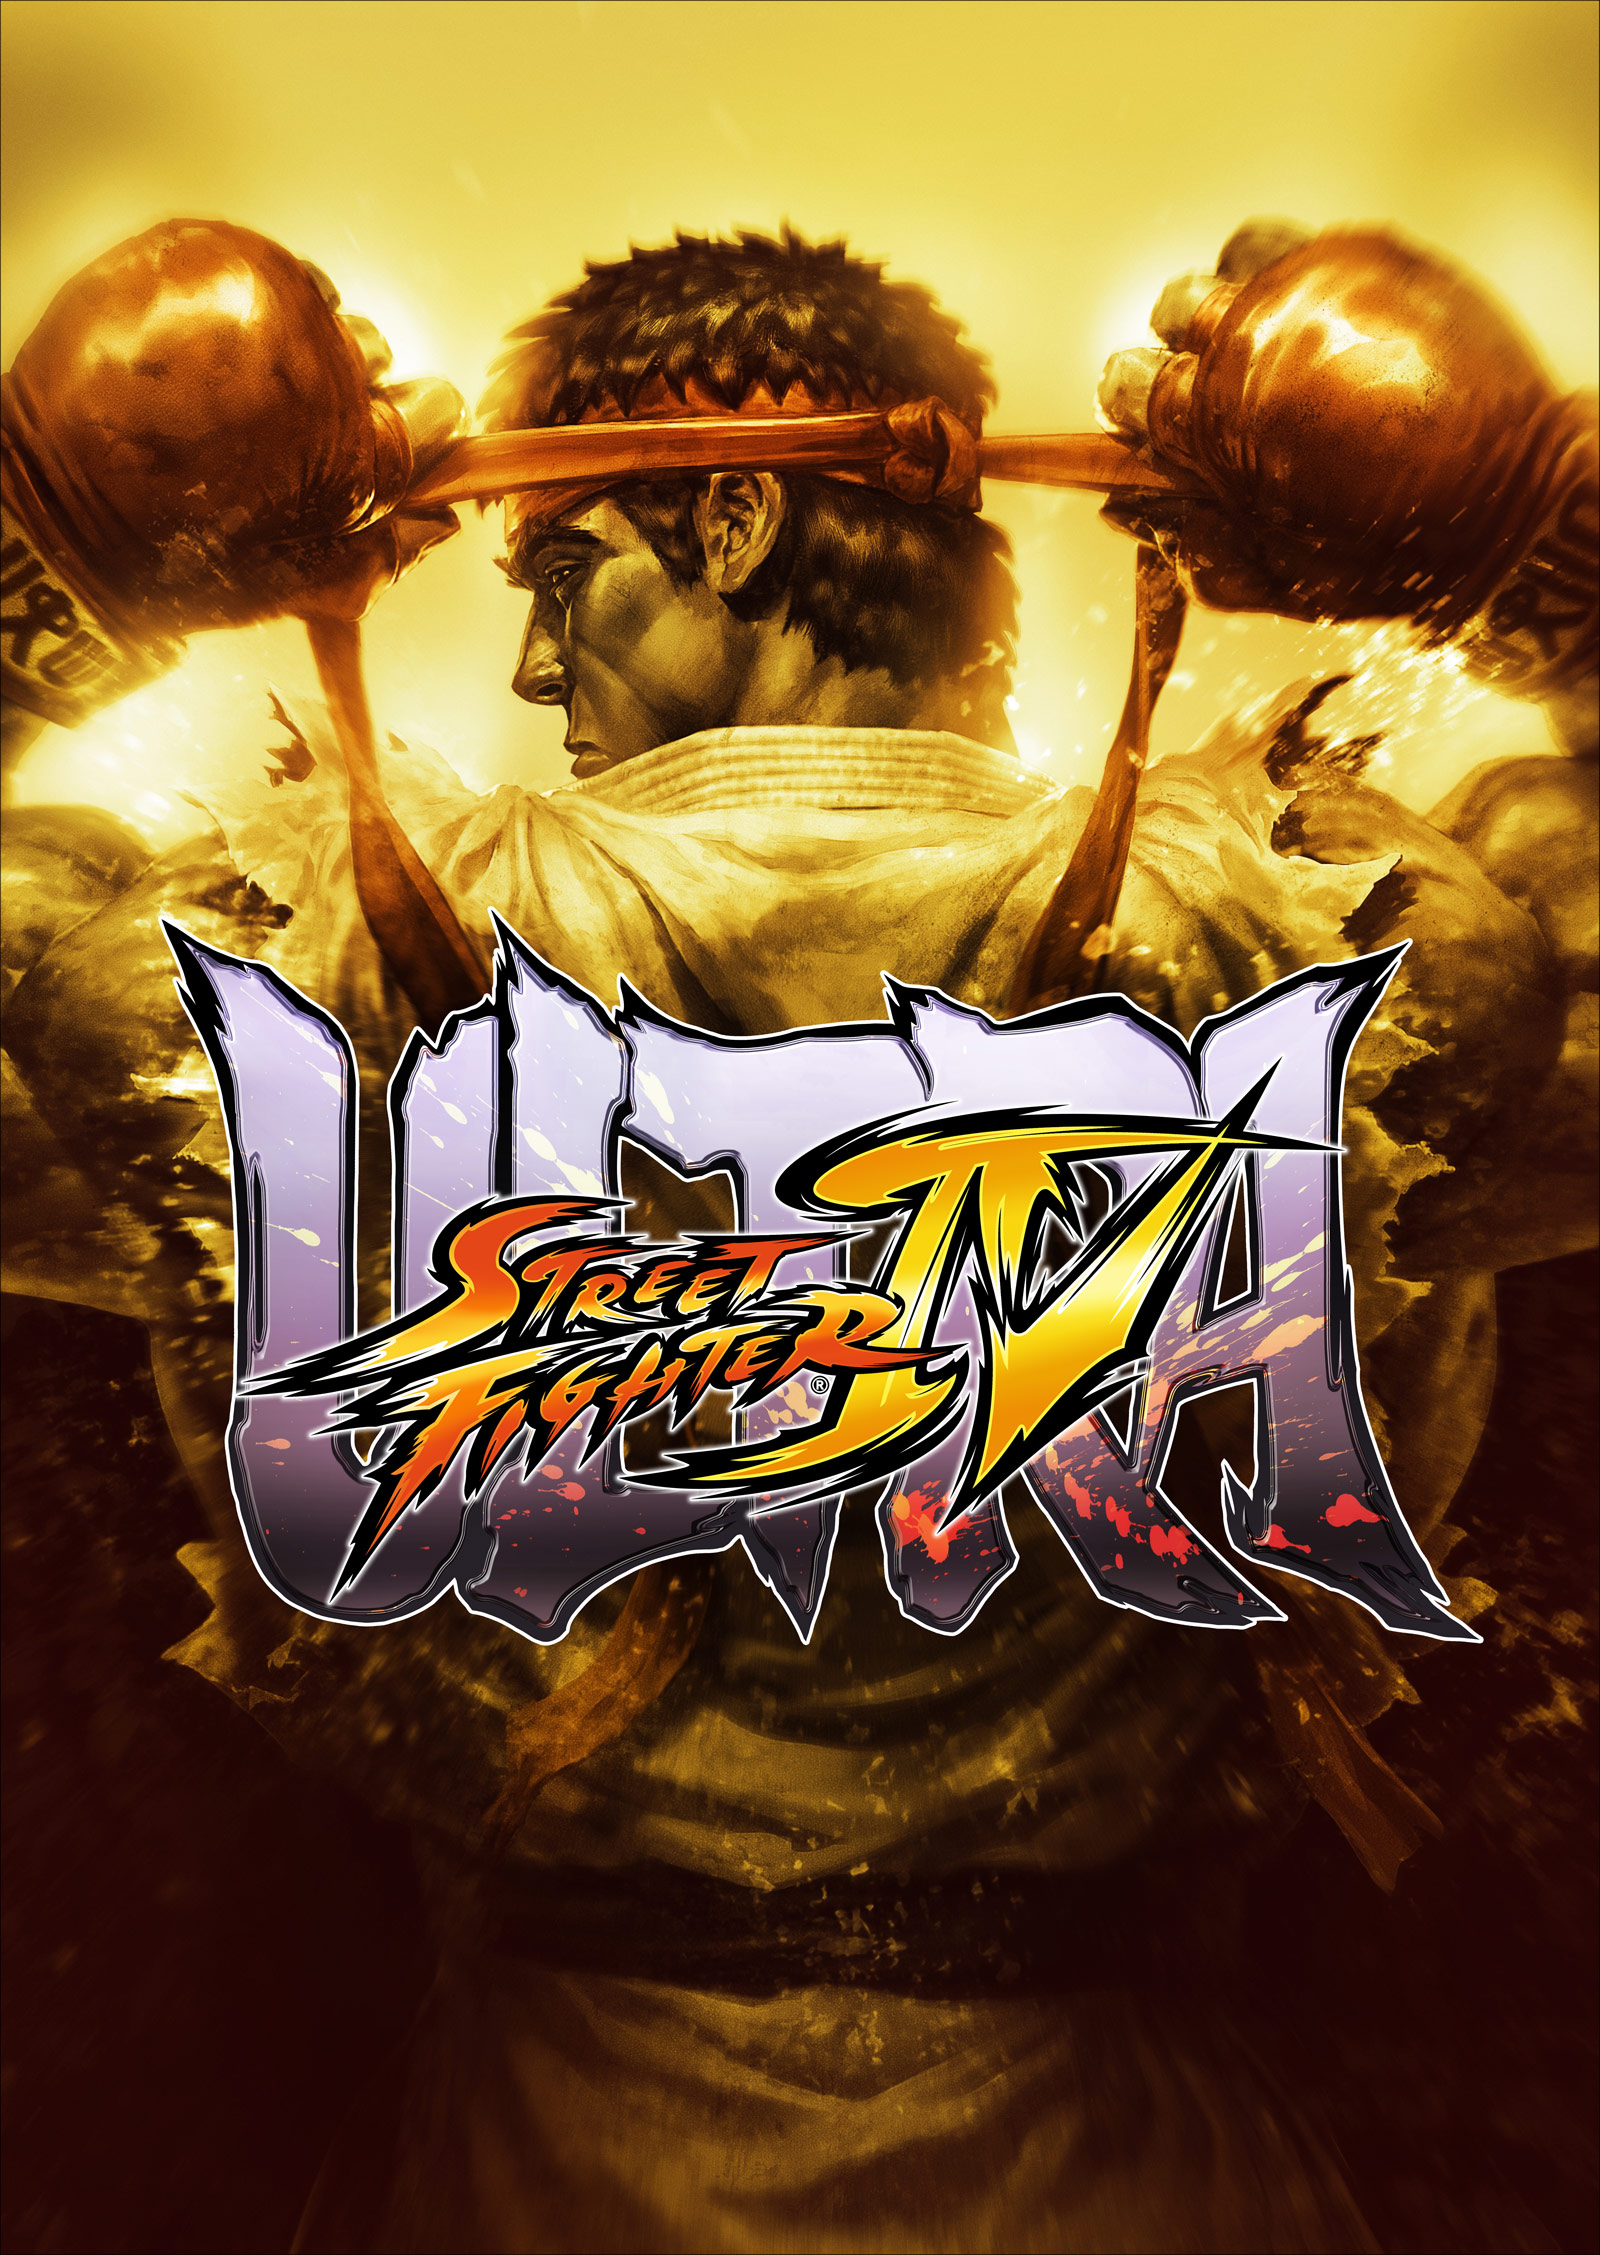 15_usf4artwork09.jpg